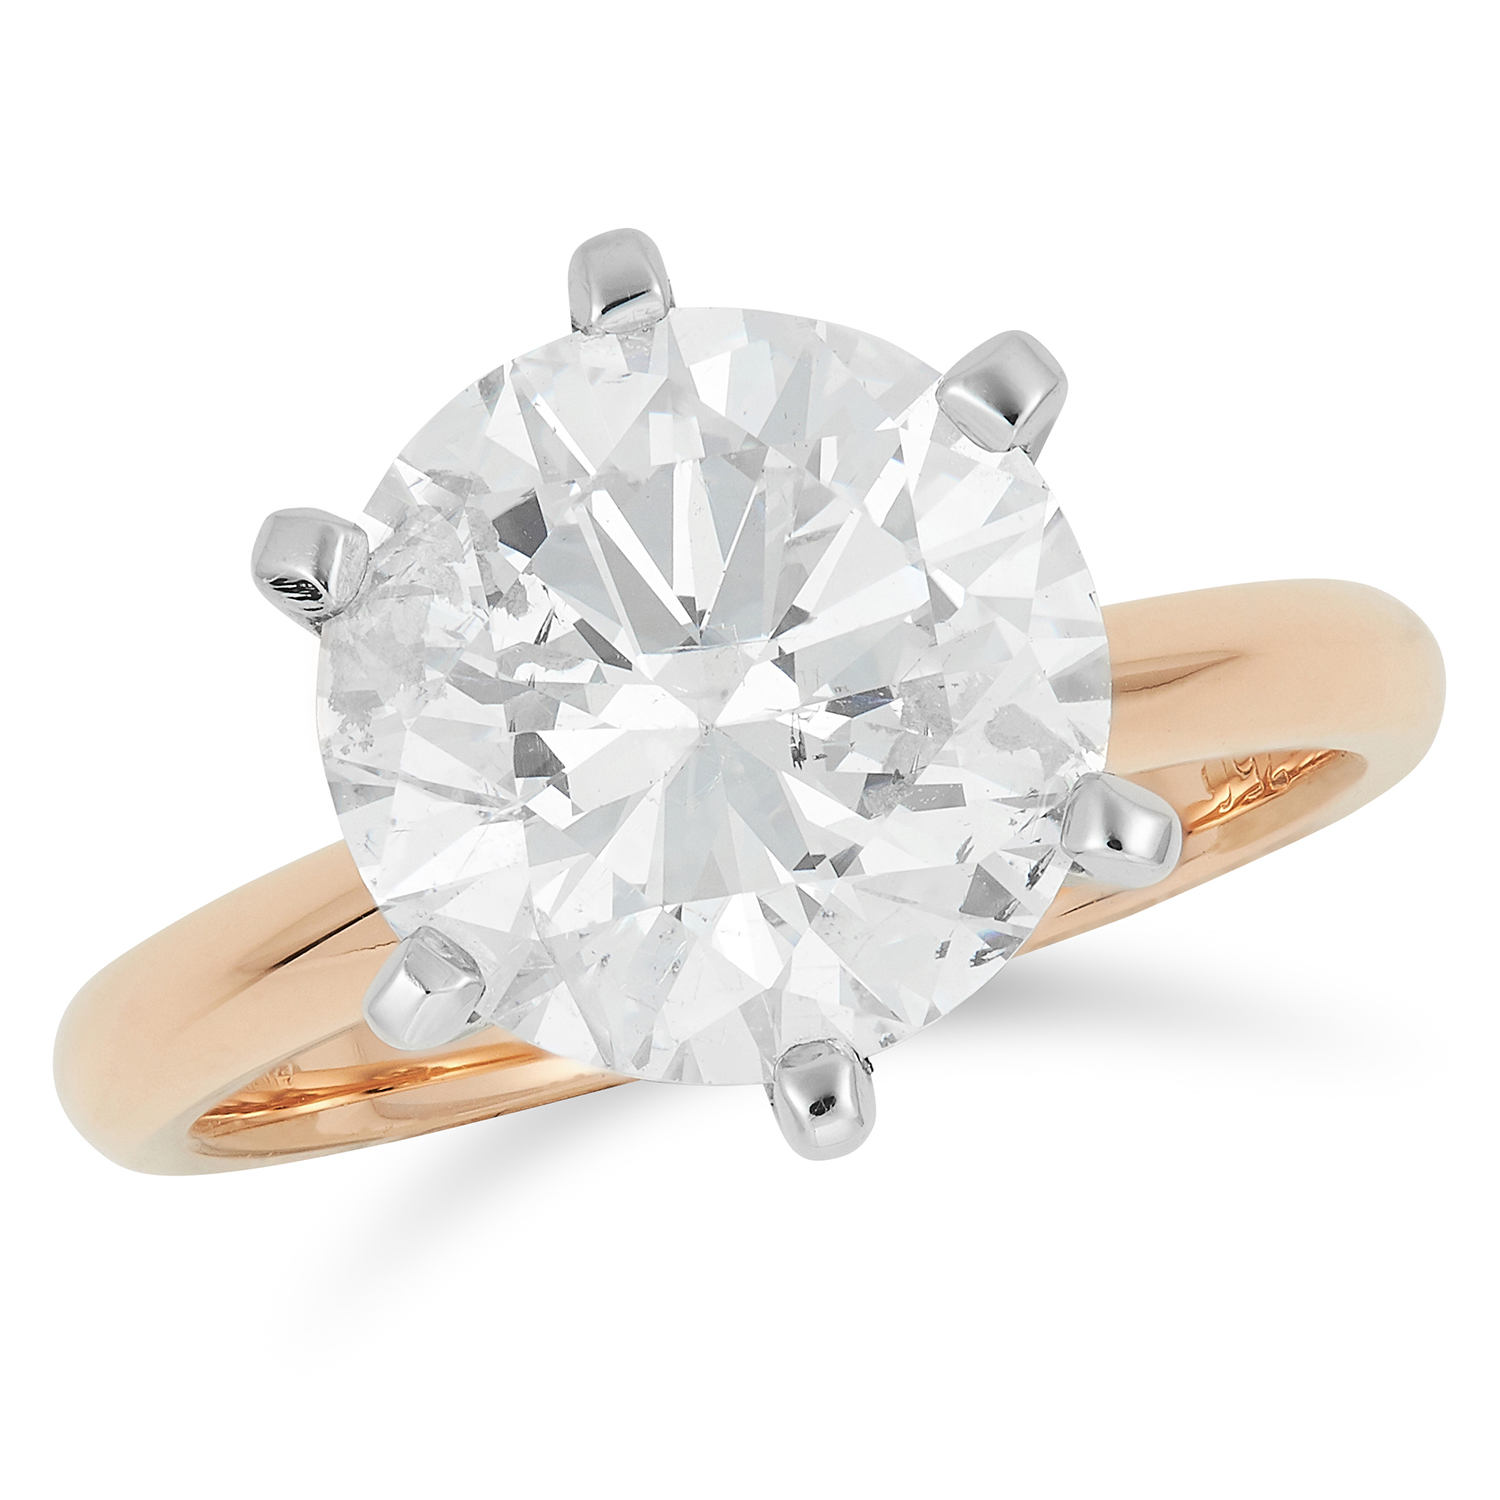 Los 4A - 4.23 CARAT SOLITAIRE DIAMOND RING set with a round cut diamond of approximately 4.23 carats, size M